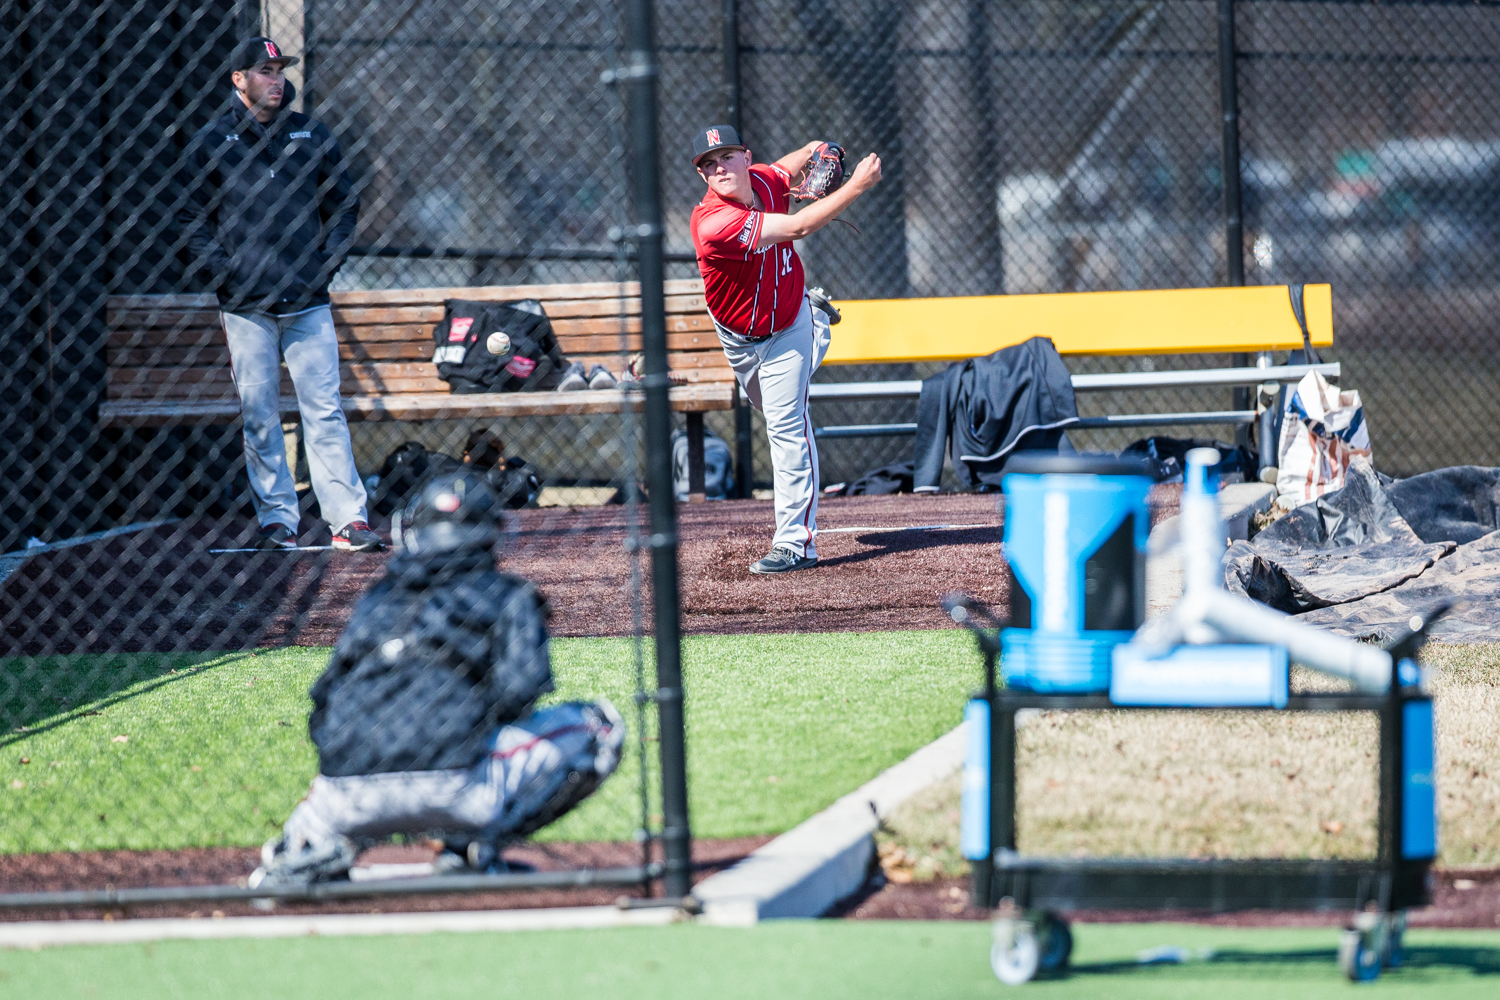 CSUN+pitcher+Blaine+Traxel+warms+up+in+the+bullpen+during+the+first+game+of+a+baseball+doubleheader+between+Iowa+and+Cal-State+Northridge+at+Duane+Banks+Field+on+Sunday%2C+March+17%2C+2019.+The+Hawkeyes+defeated+the+Matadors%2C+5-4.